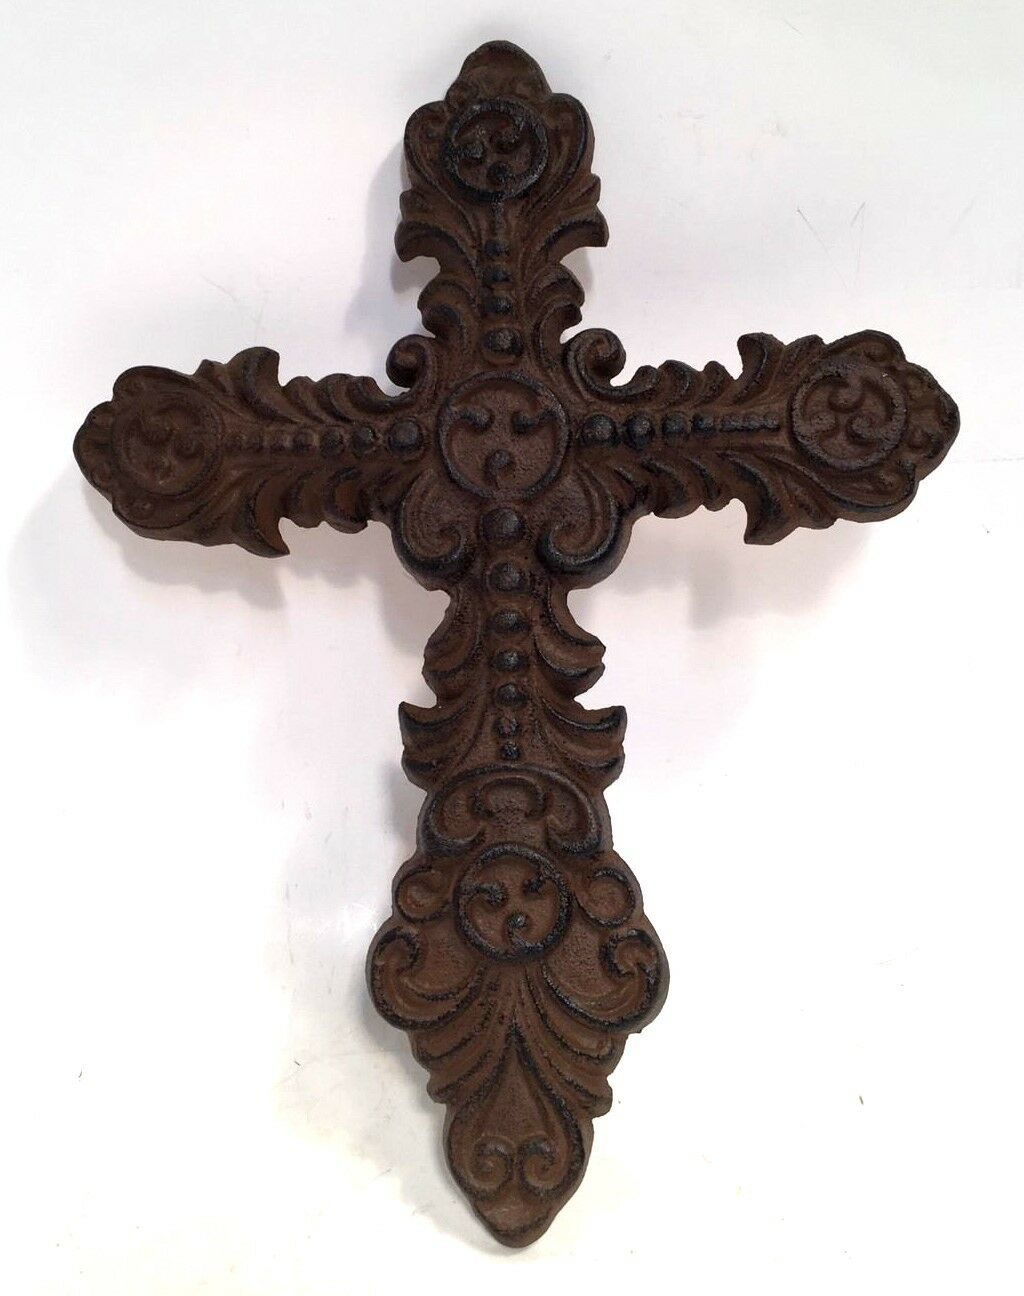 Cross Crucifix Cast Iron Wall Hanging New Vintage Decorative Home Style Decor